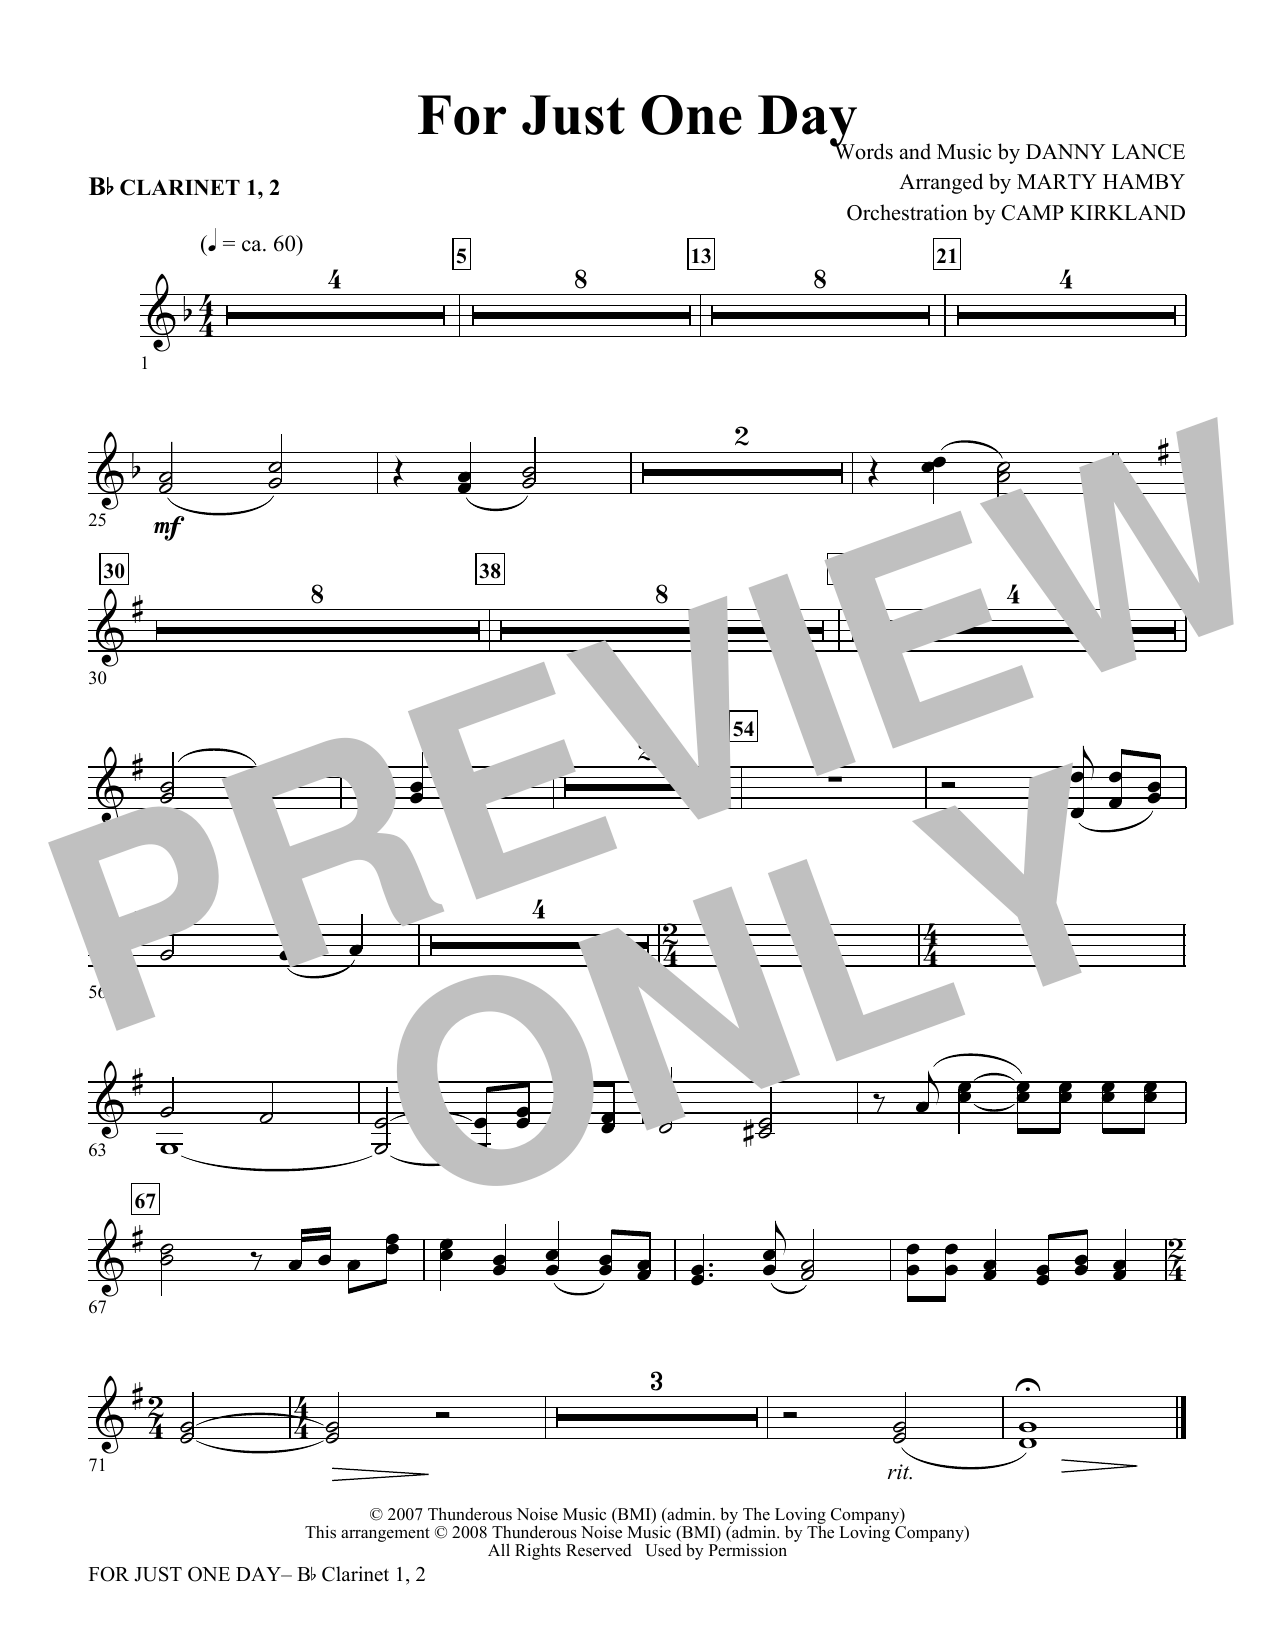 For Just One Day - Clarinet 1 & 2 Sheet Music